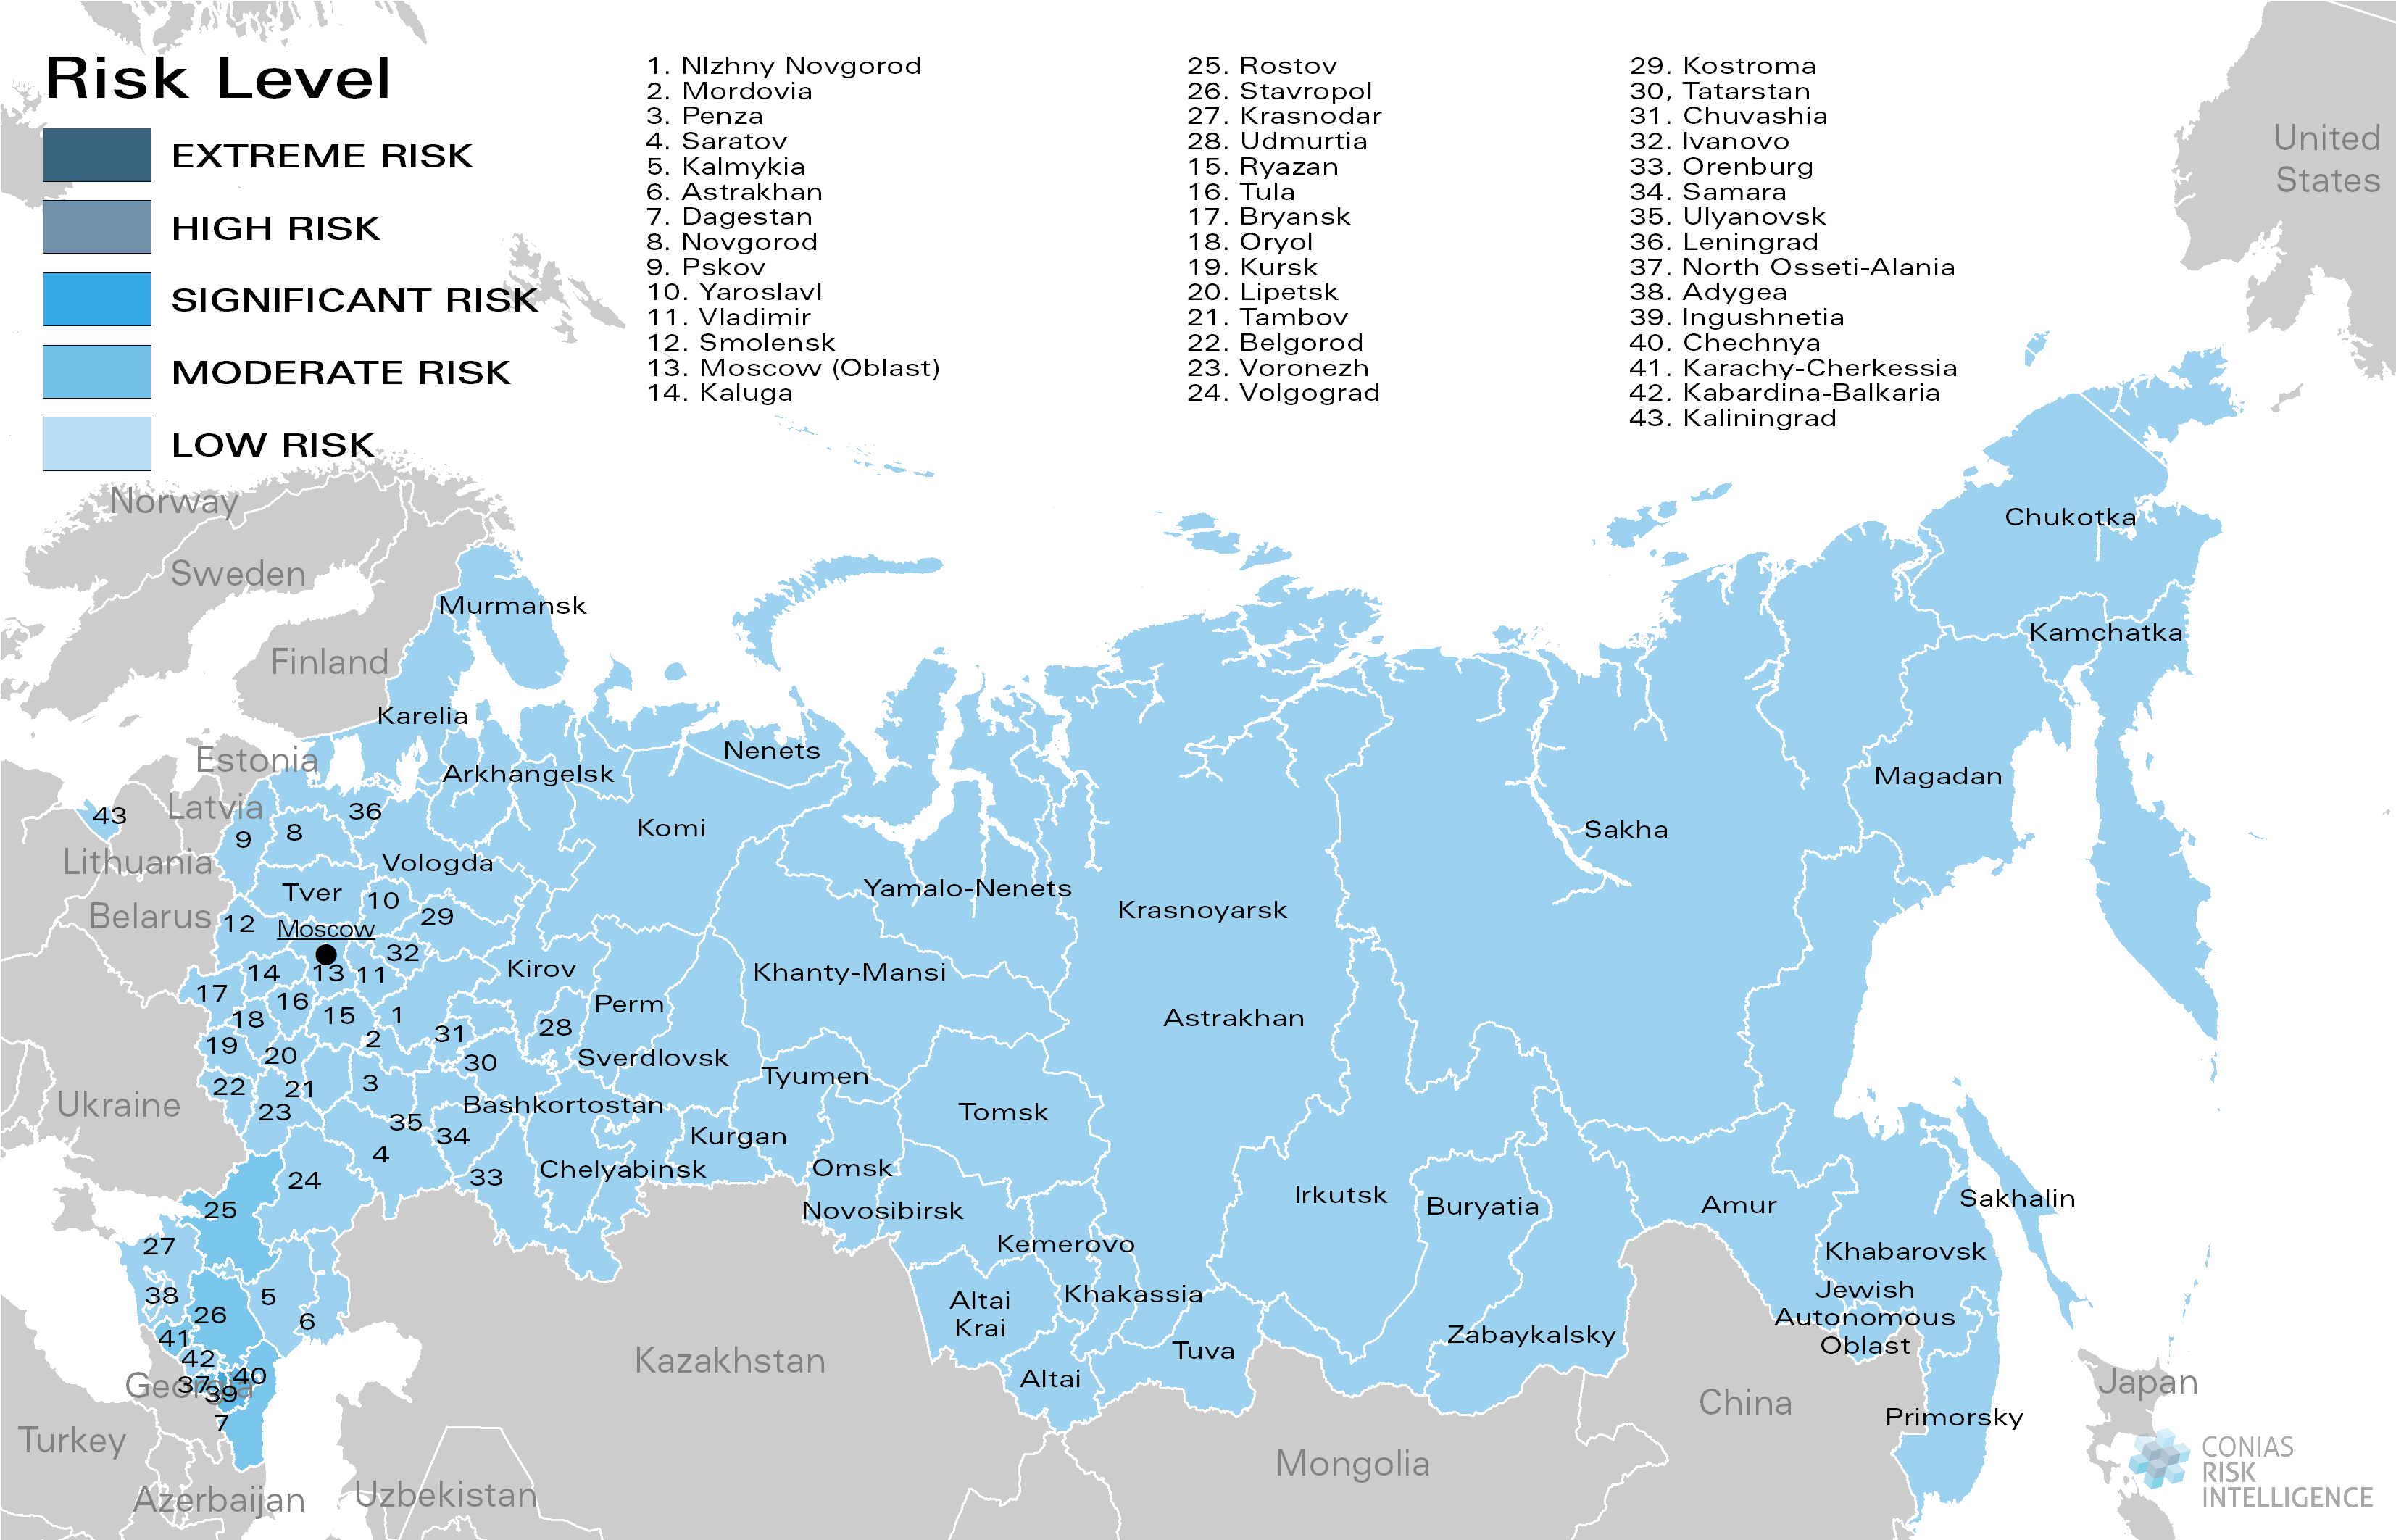 CONIAS Political Risk Maps Russland